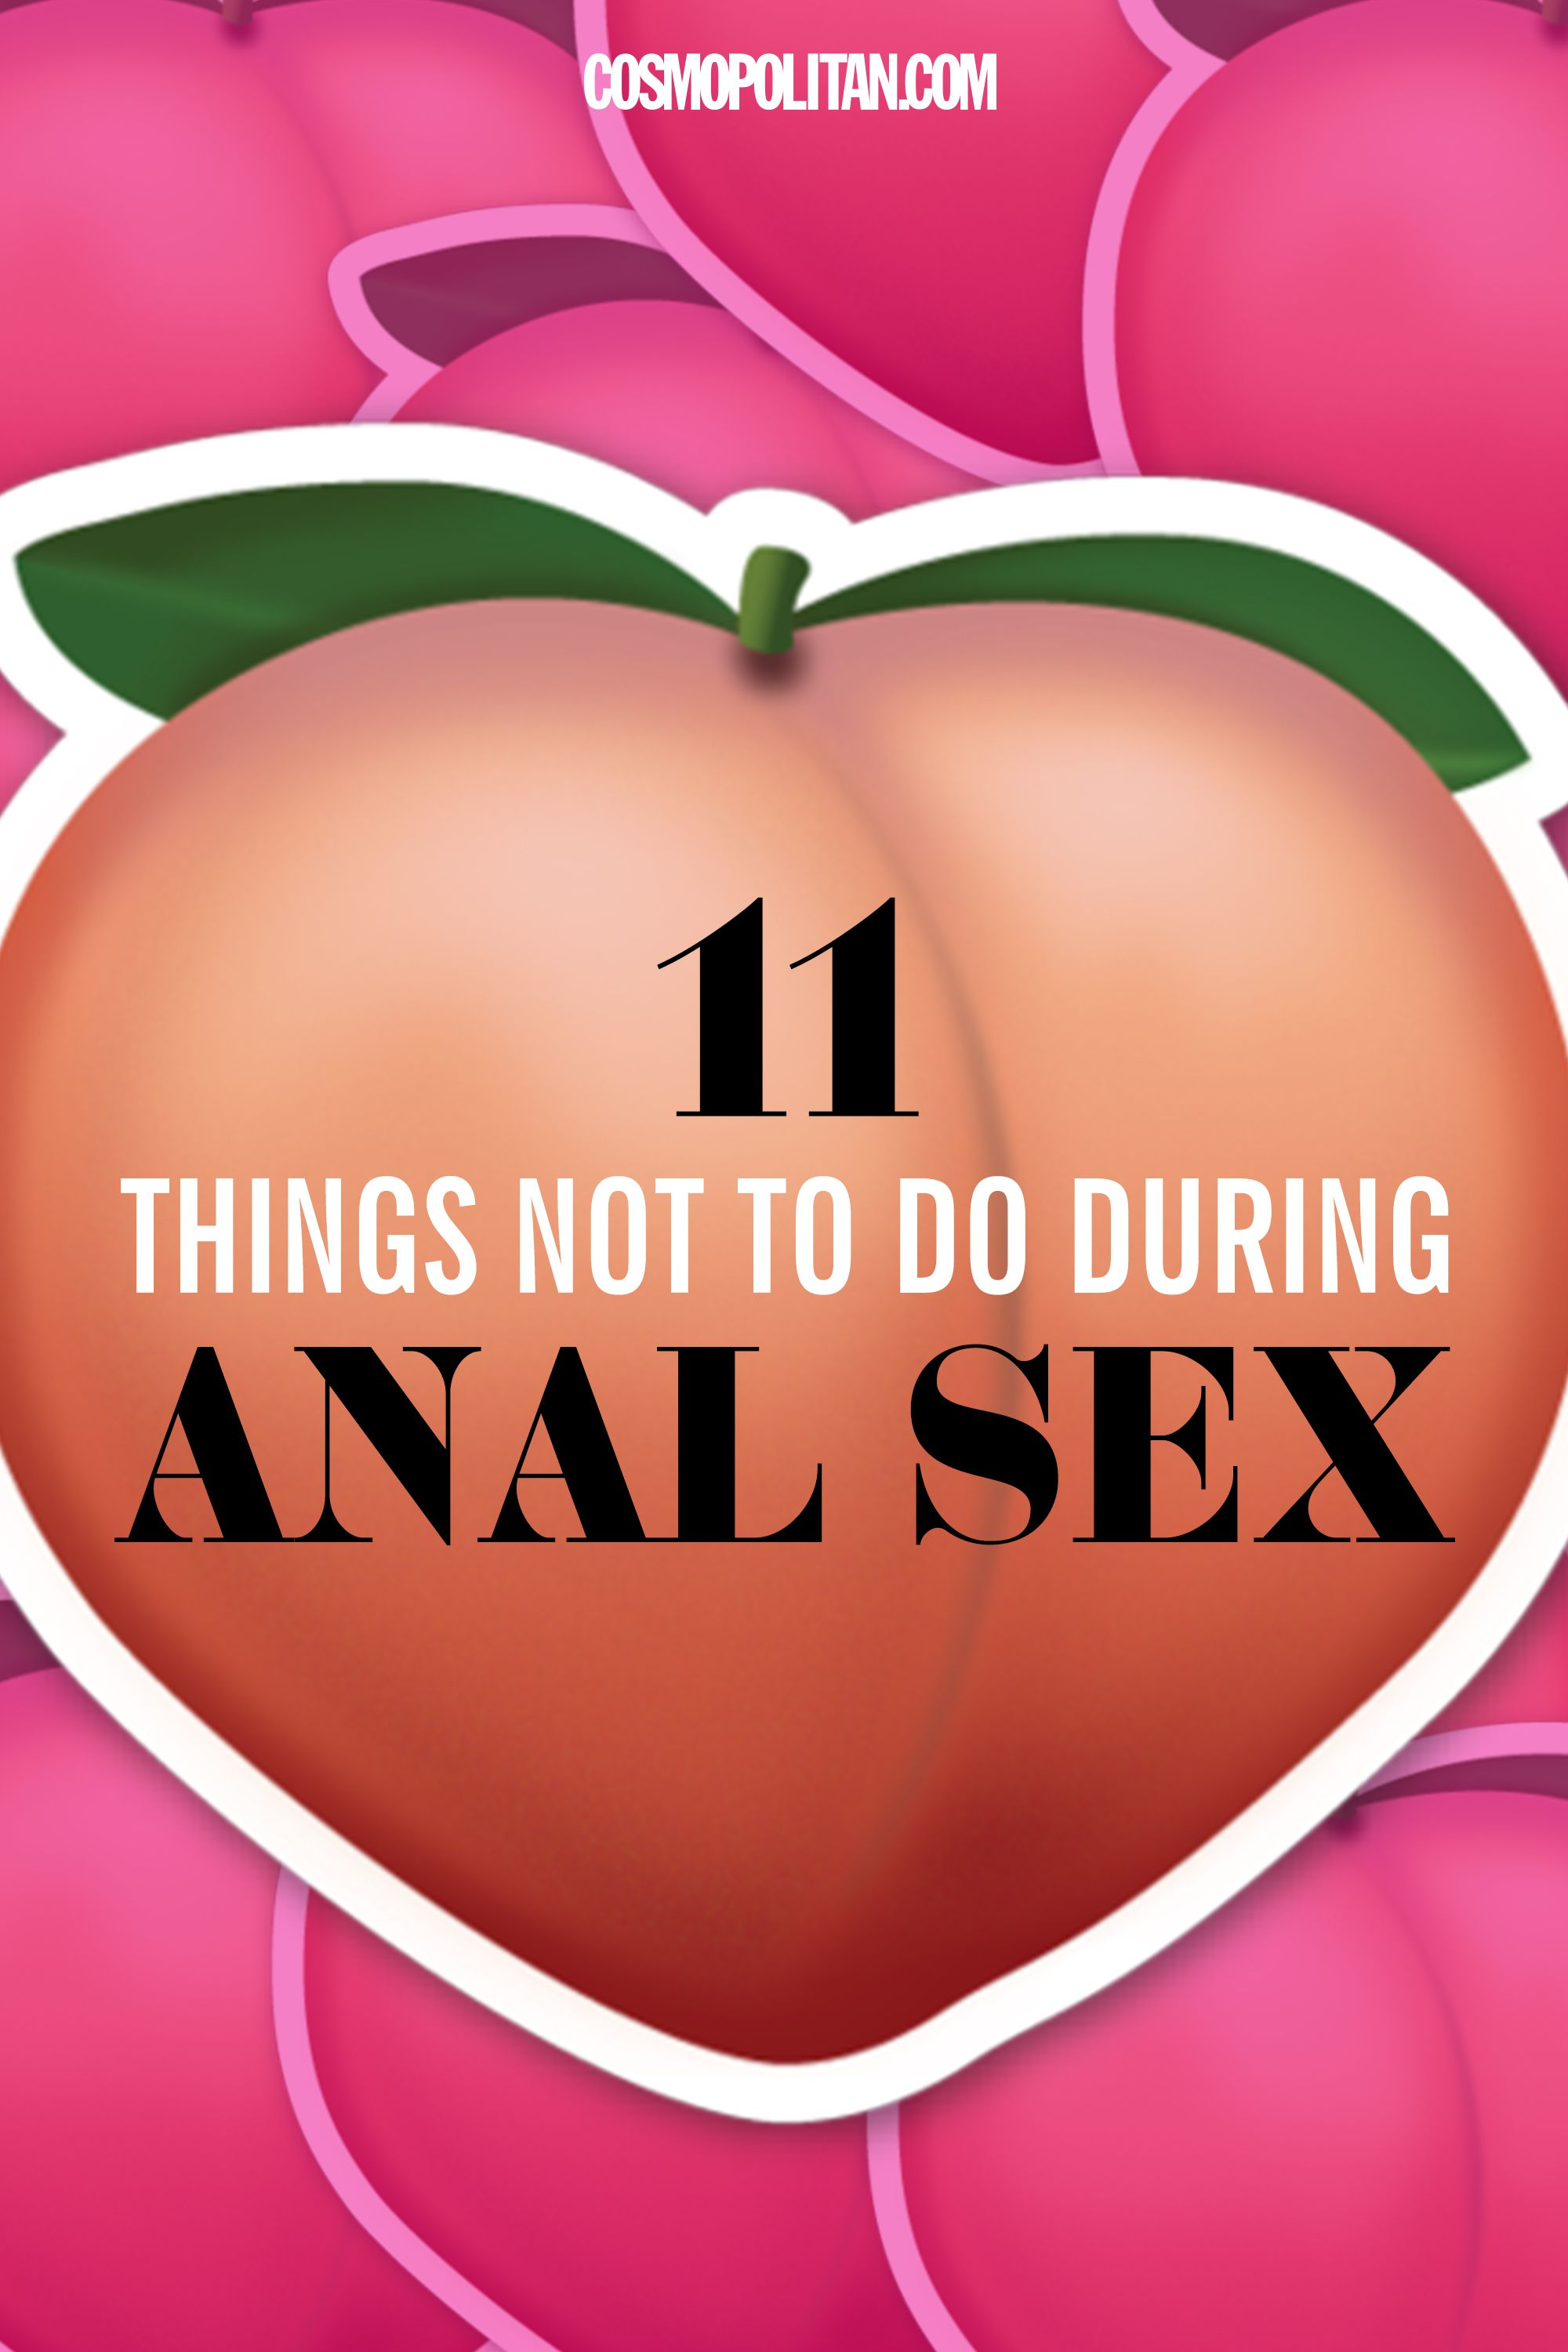 The dangers of anal sex